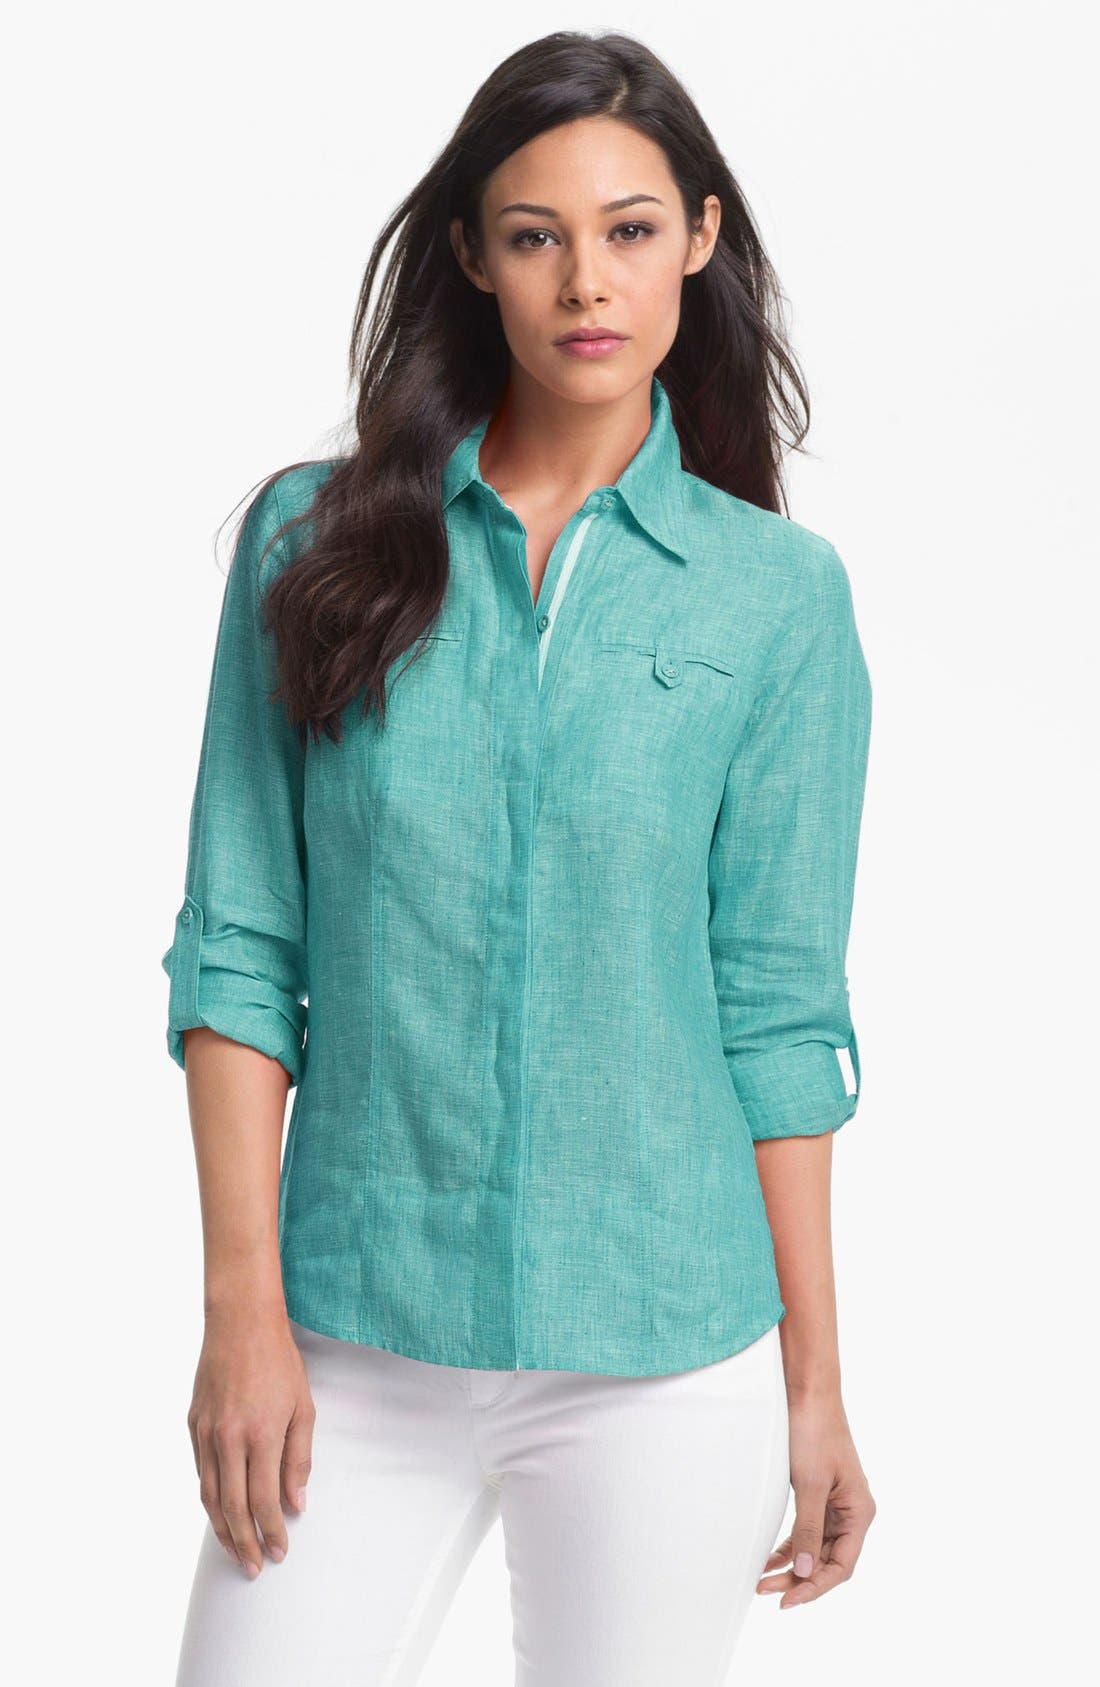 Alternate Image 1 Selected - Foxcroft Roll Sleeve Linen Shirt (Petite)